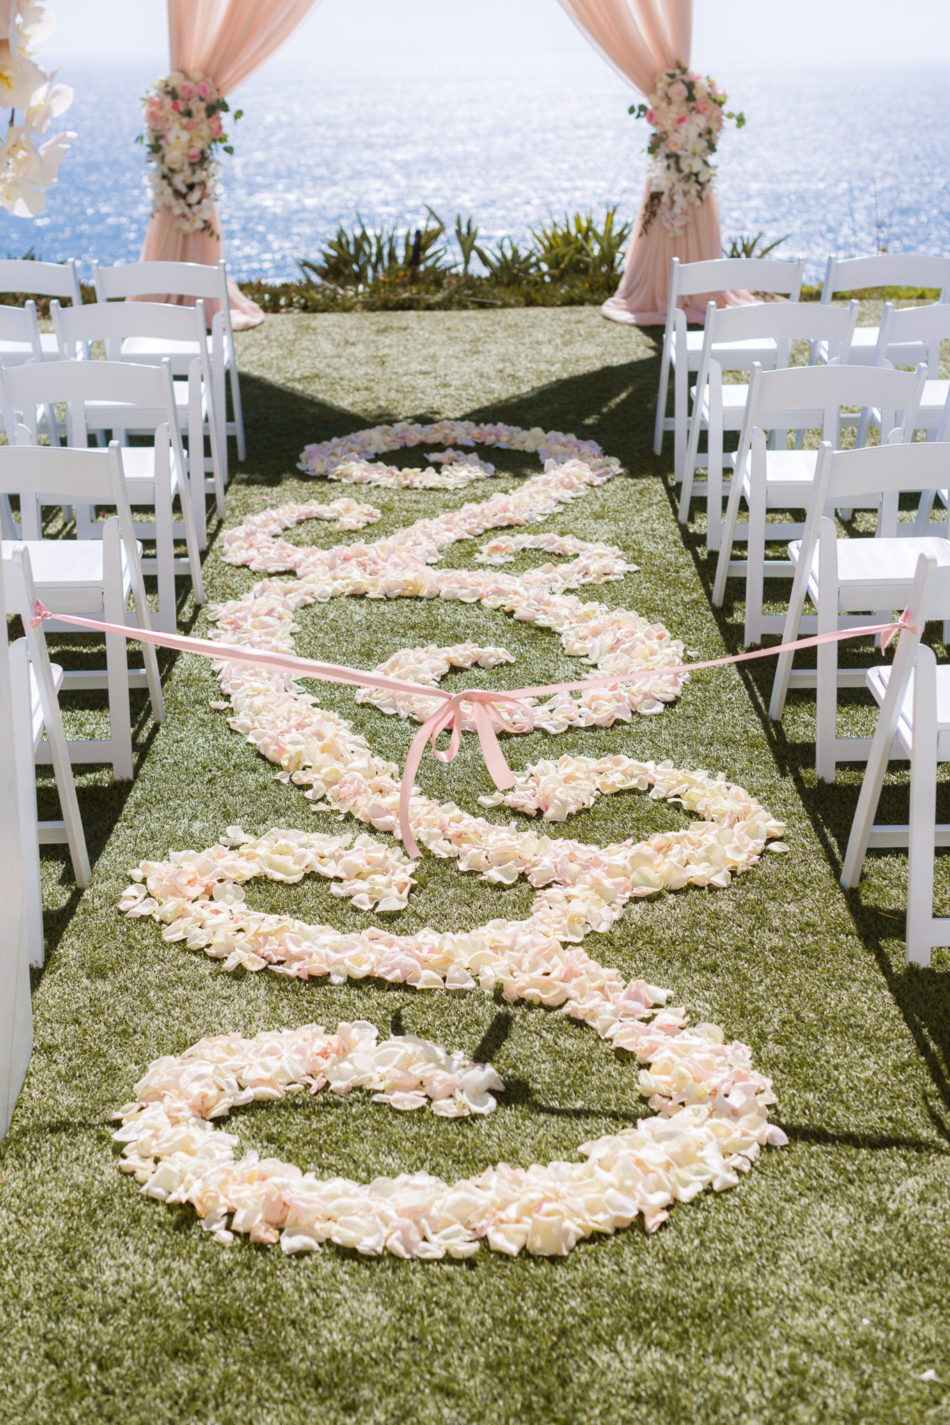 pink aisle petals, pink petals, aisle petals, floral design, florist, wedding florist, wedding flowers, orange county weddings, orange county wedding florist, orange county florist, orange county floral design, flowers by cina